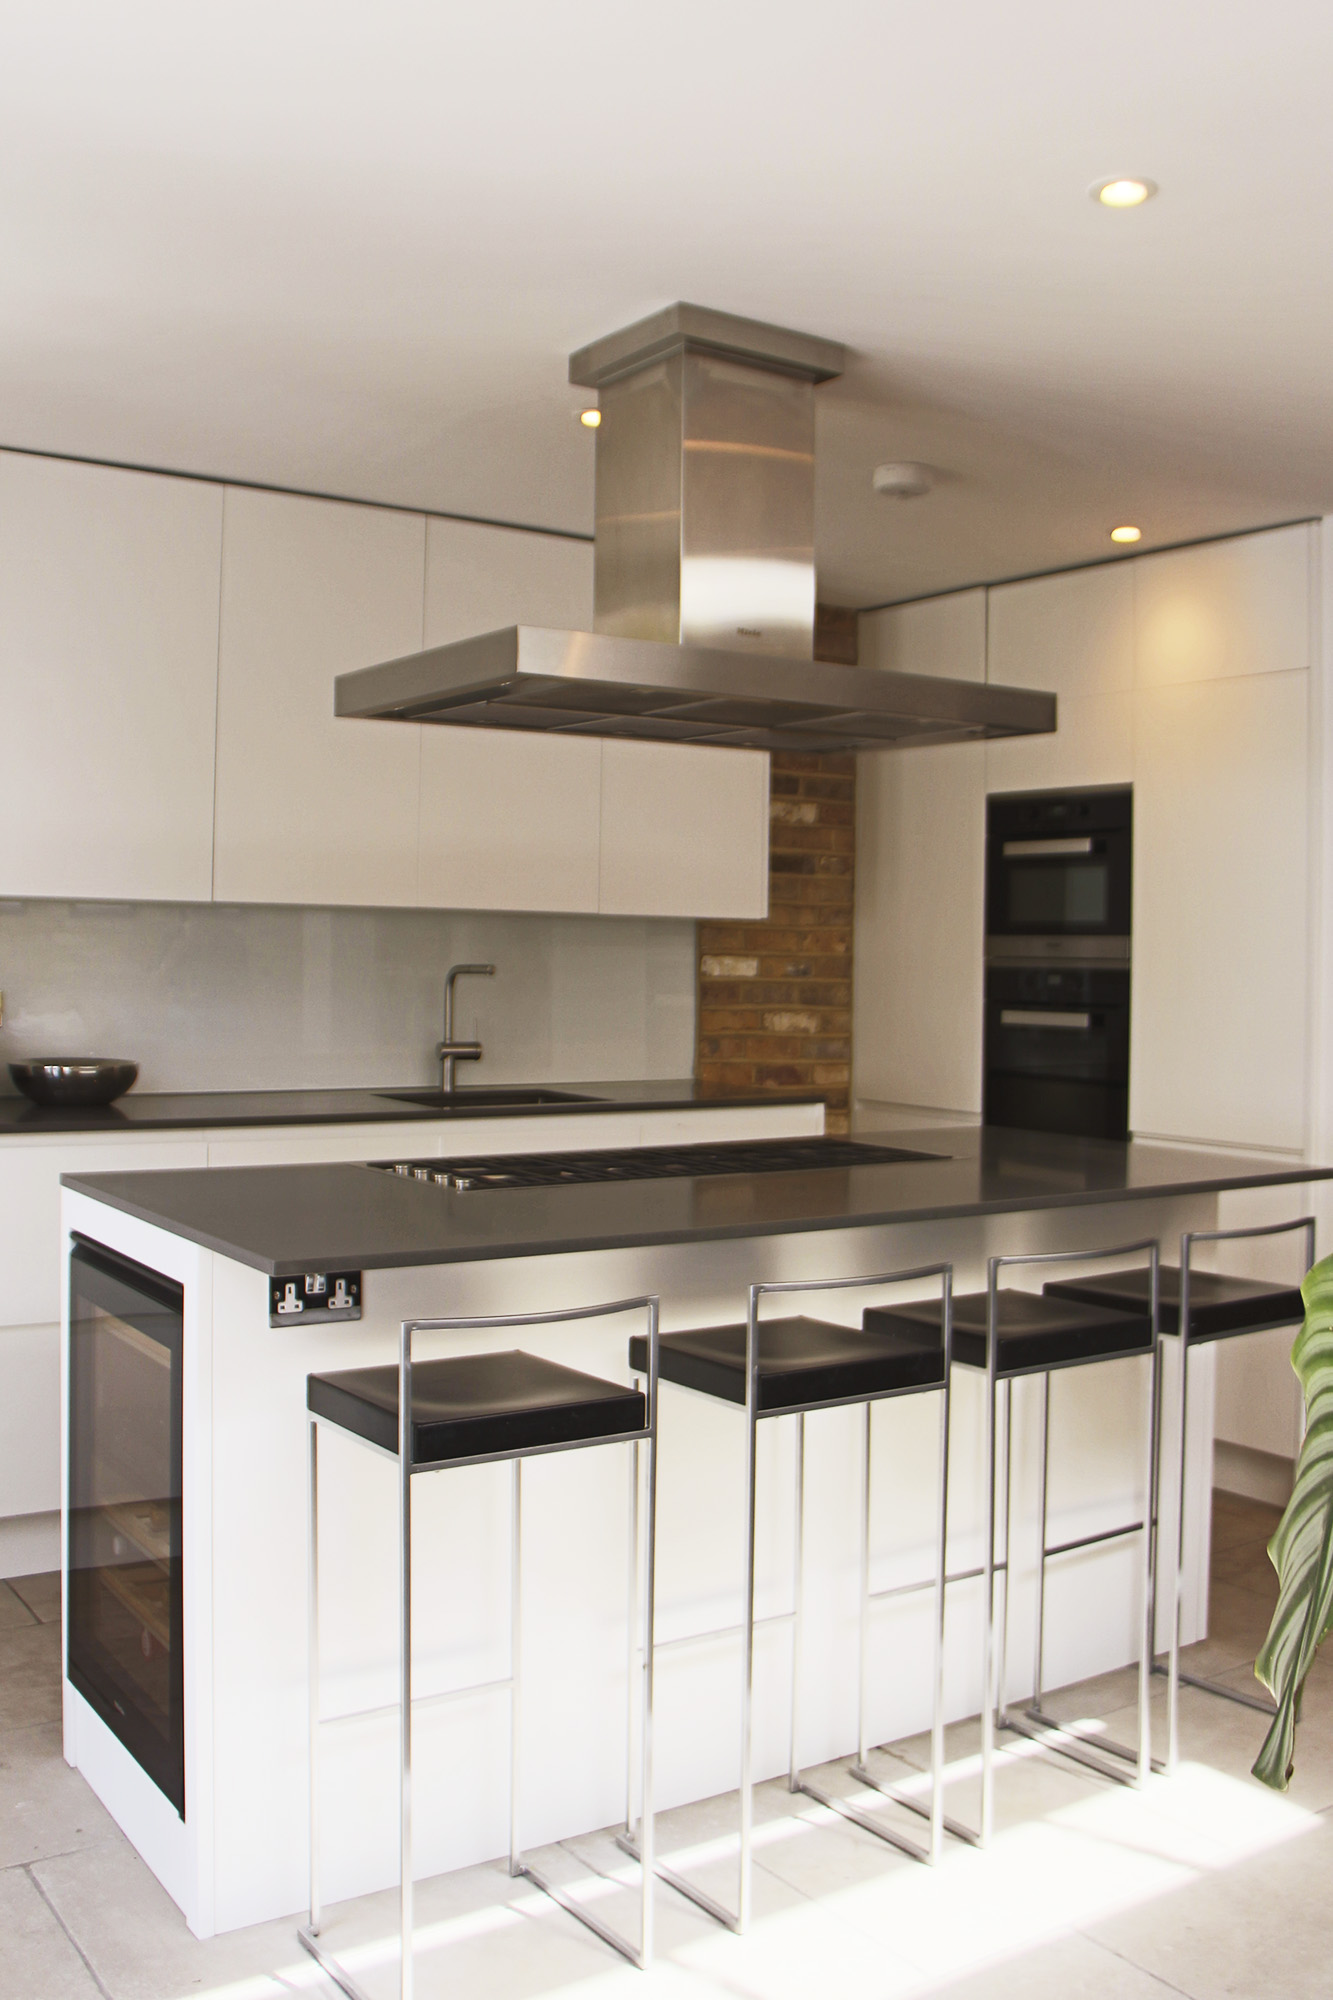 - marchini-architecture.com, - Putney, - loft extension, - basement extension, - rear extension, - front extension, - contemporary cottage, - contemporary Miele kitchen